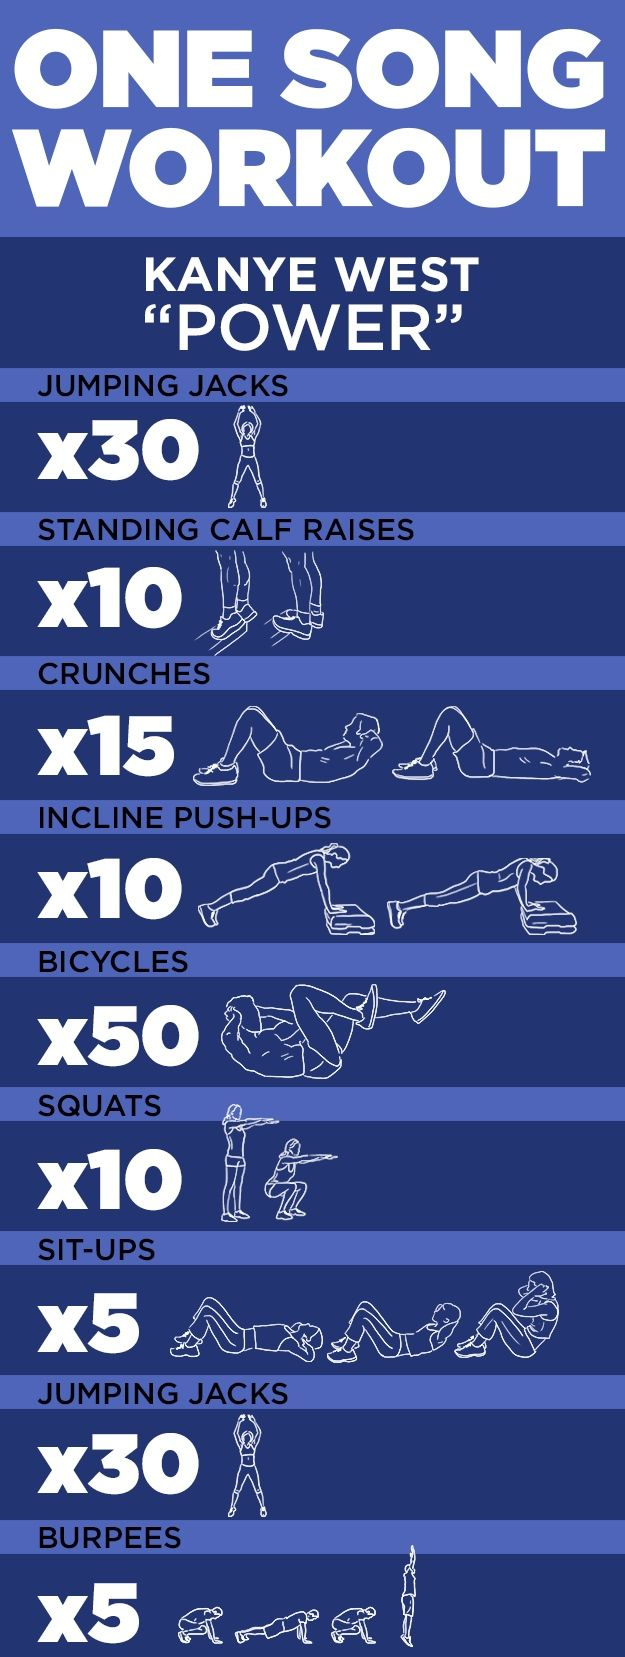 One Song Workout.